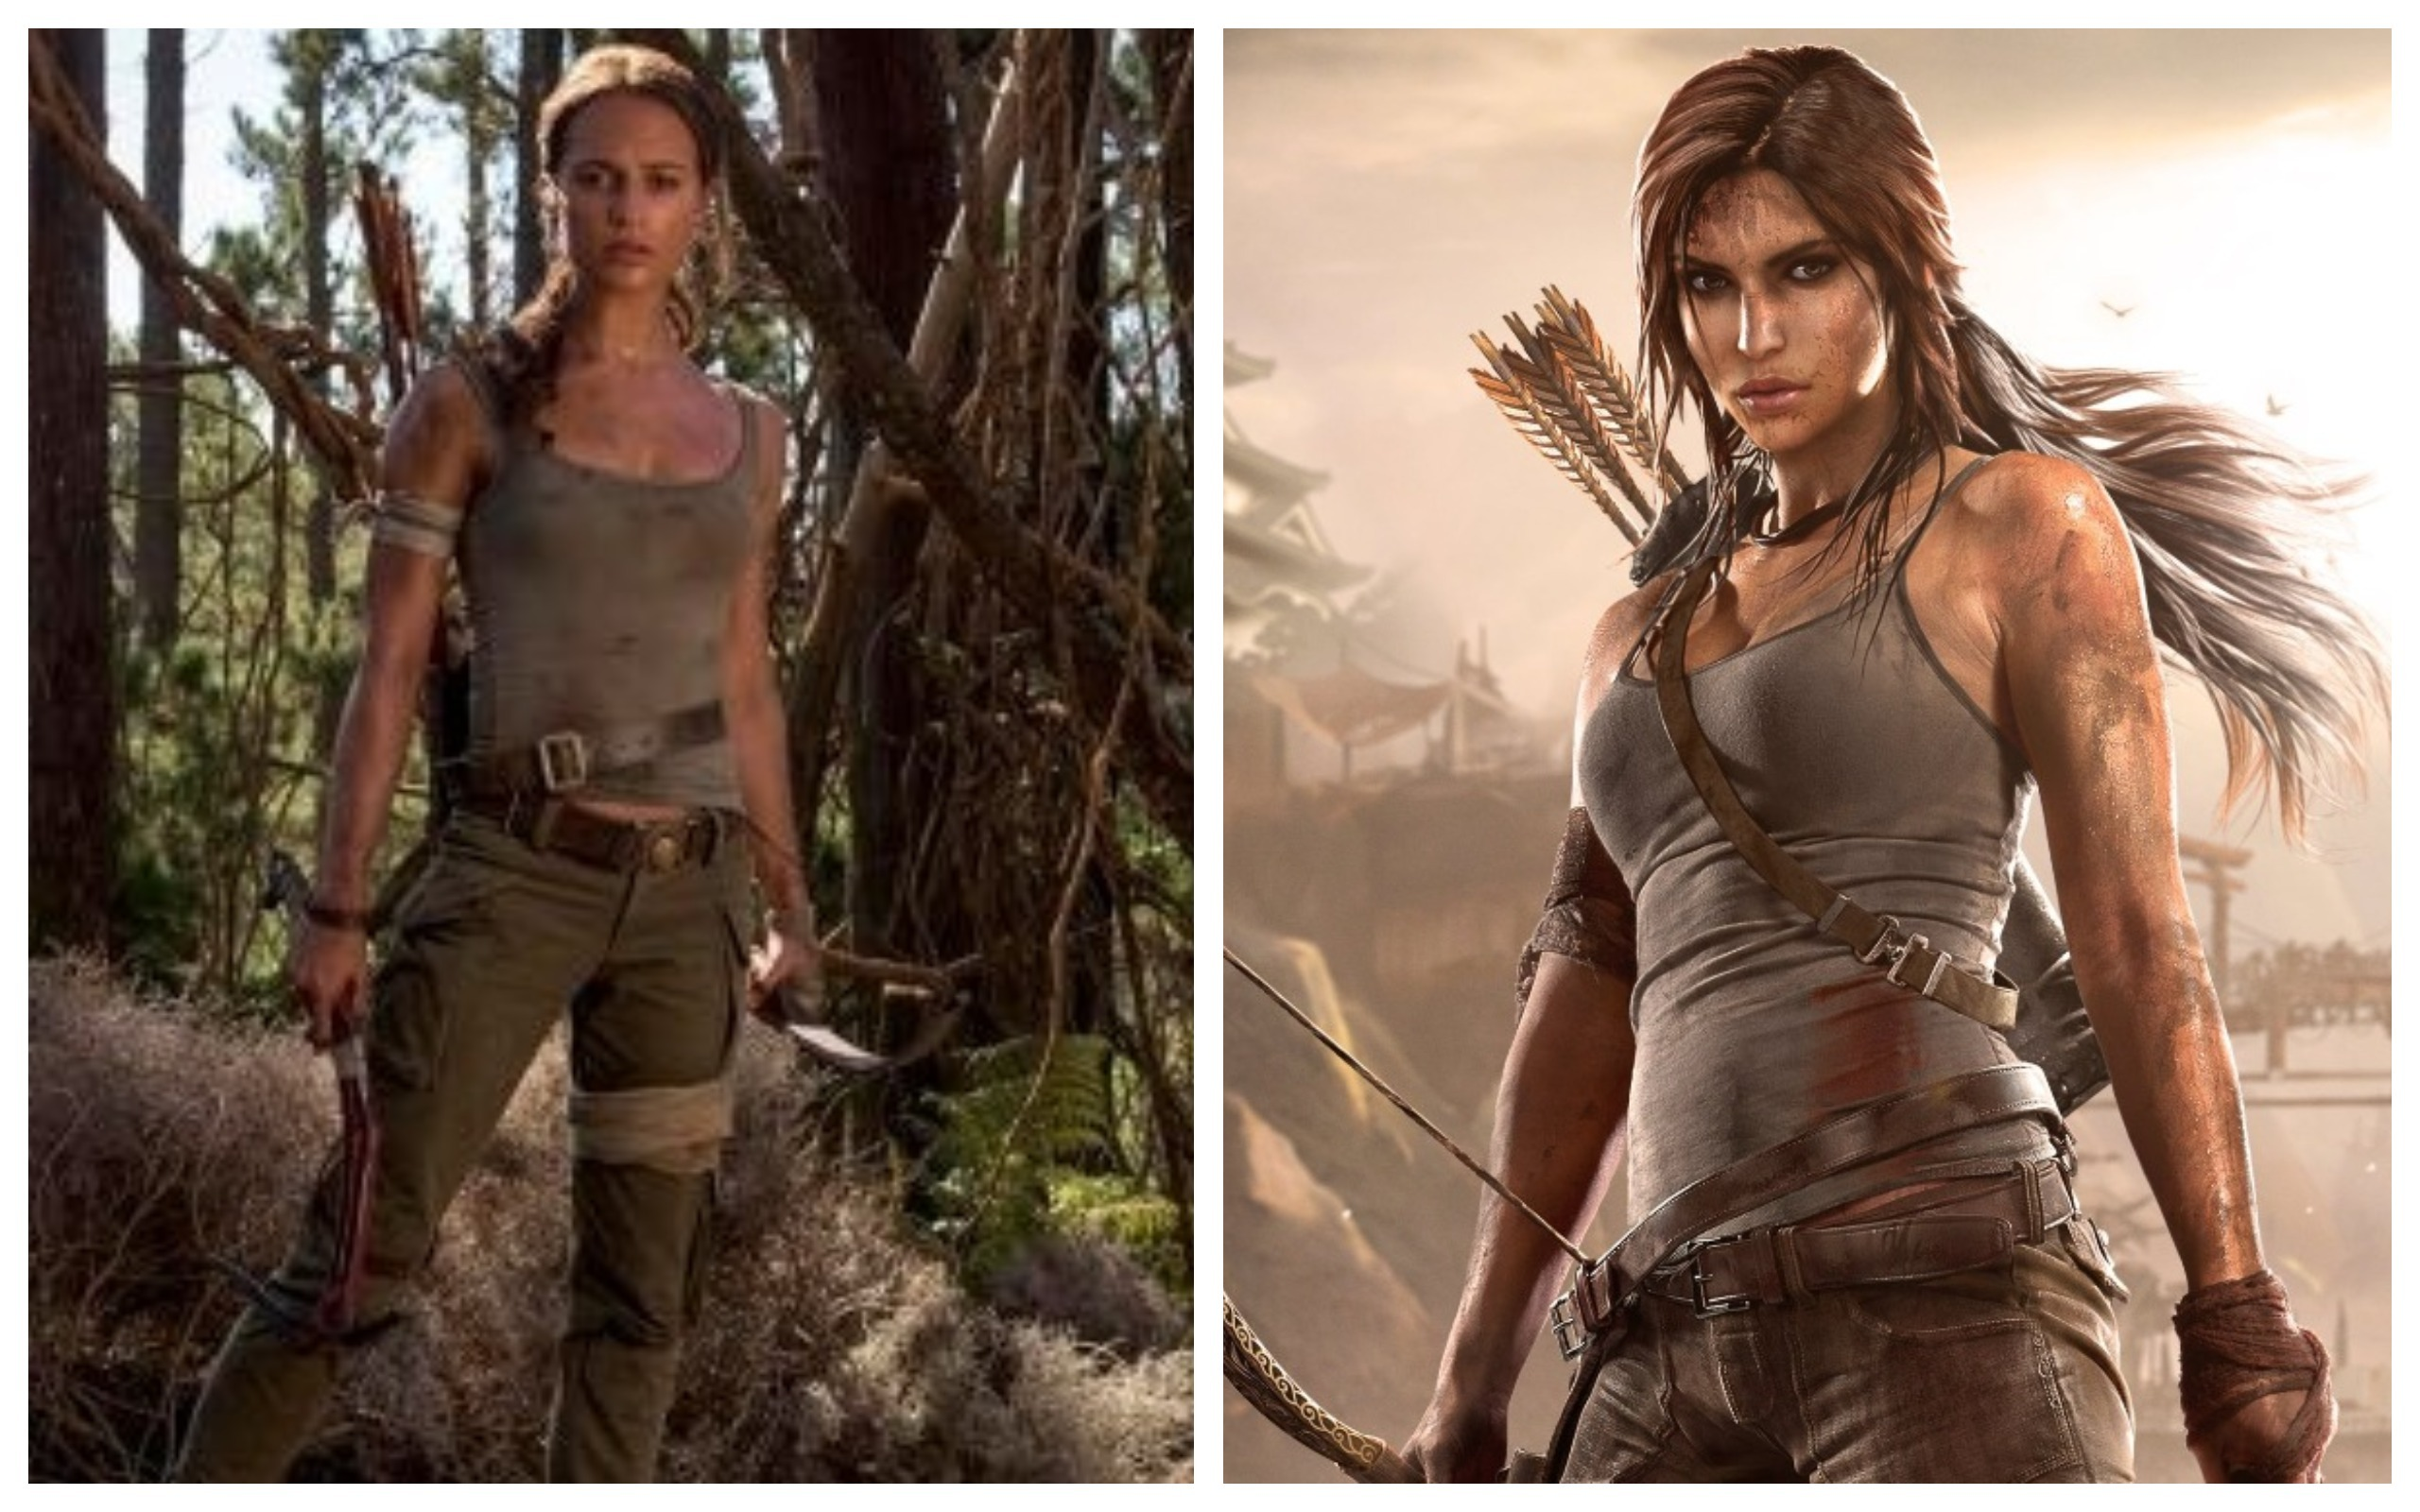 Tomb Raider Video Game And Film Differences Indiewire